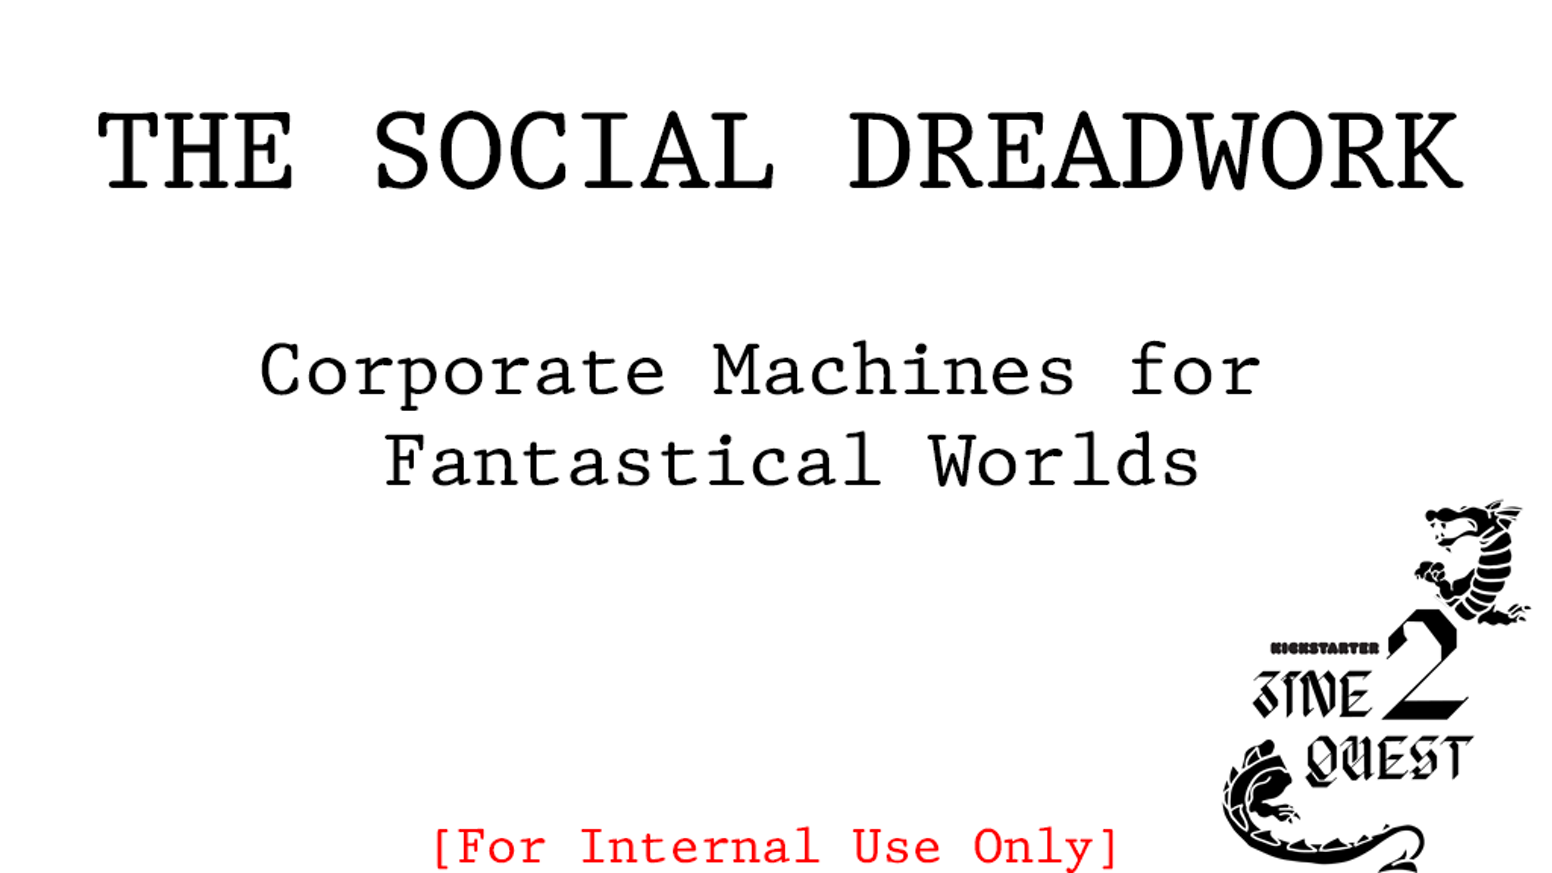 Corporate Machines for Fantastical Worlds - A Zine Quest offering